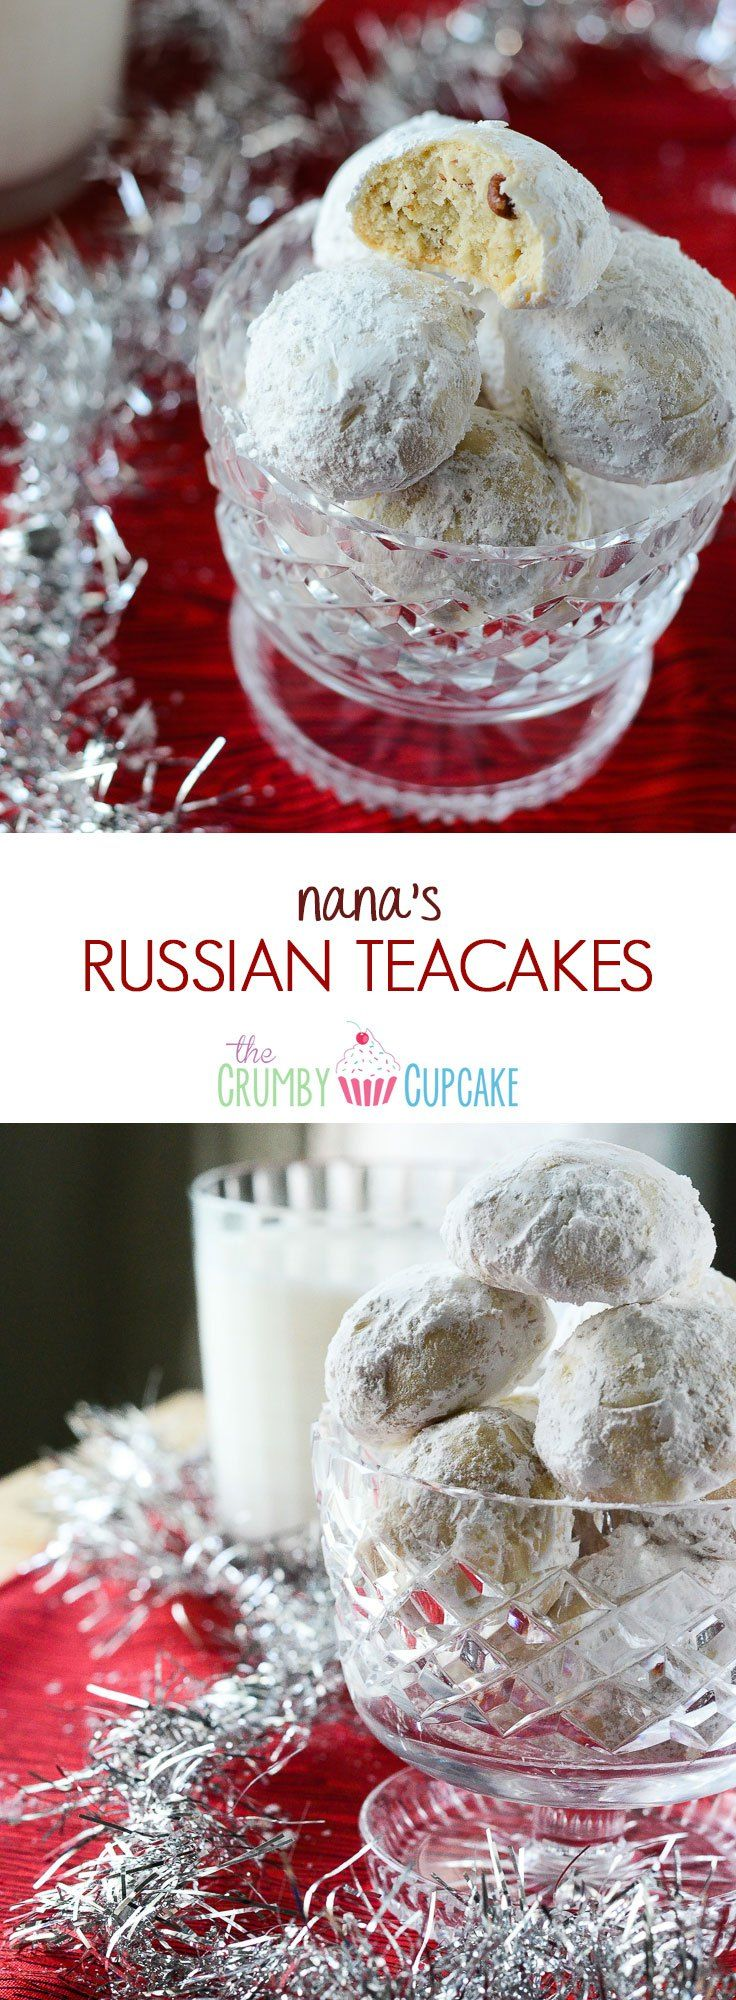 Nanas russian teacakes straight out of nanas recipe book these straight out of nanas recipe book these nut balls are the same soft buttery melt in your mouth teacakes found all over the world at christmastime forumfinder Gallery